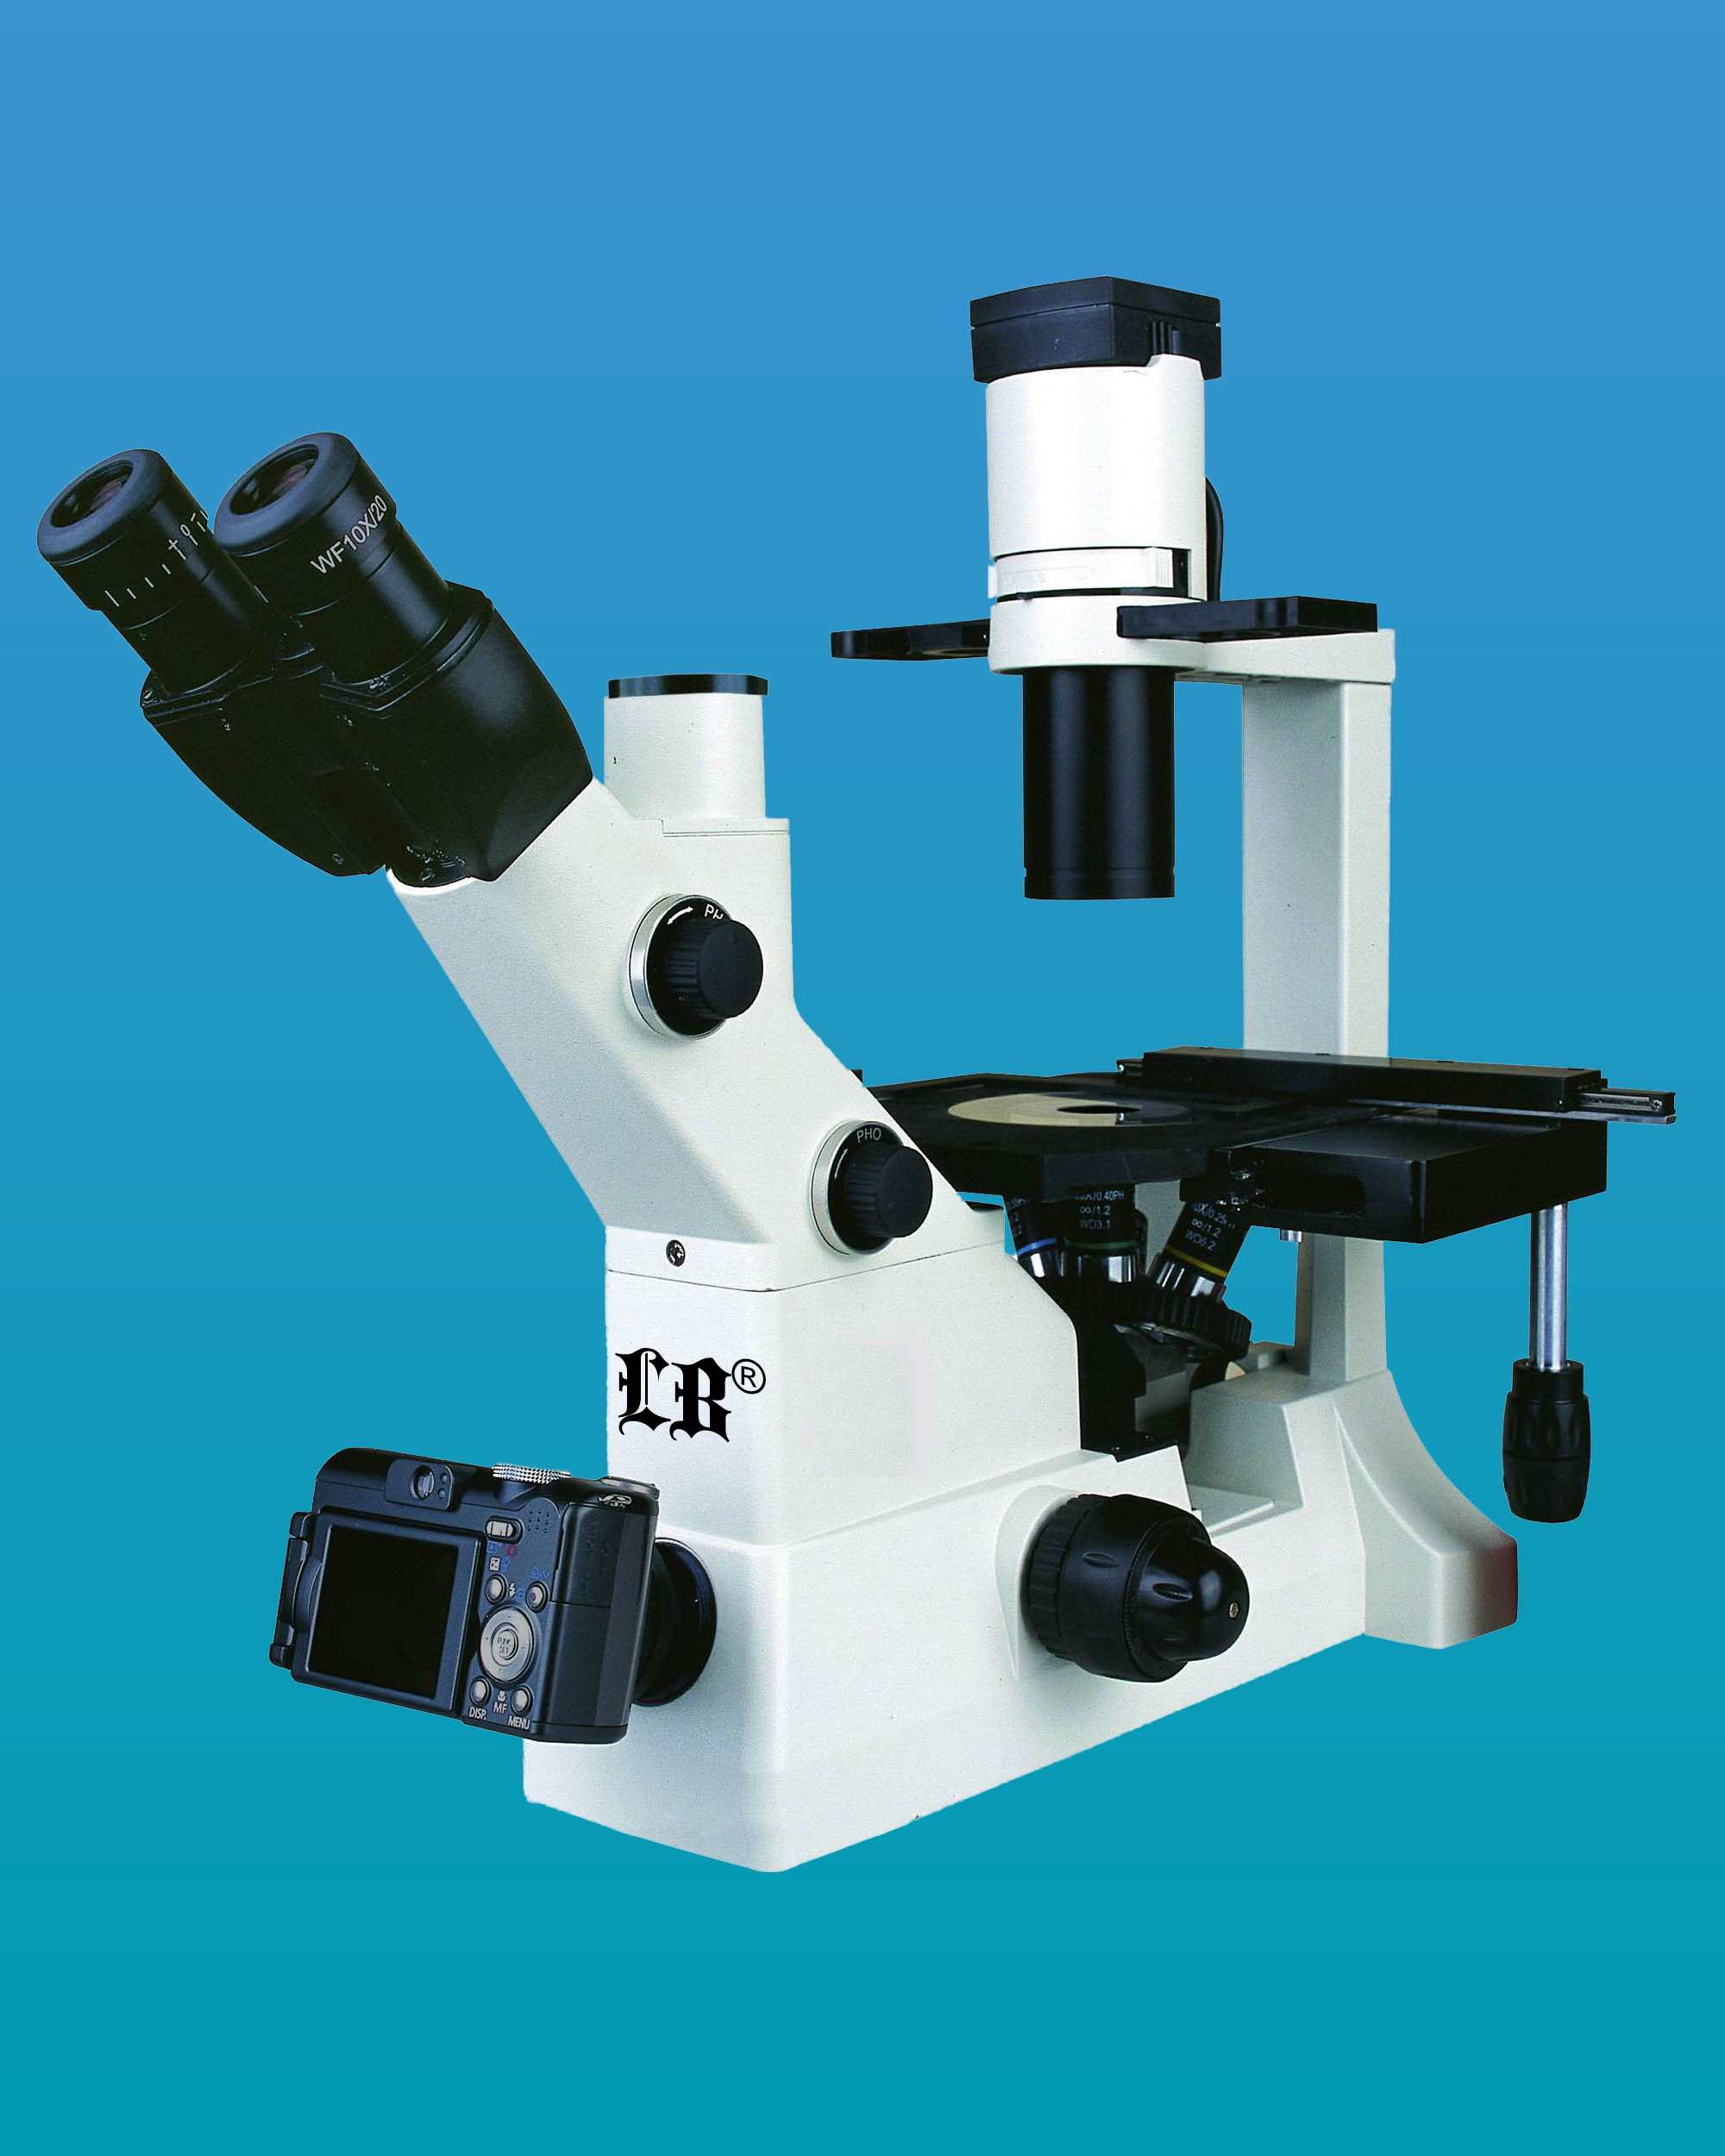 [LB-291] Inverted Trinocular Biological Microscope w/ Infinite Optical System